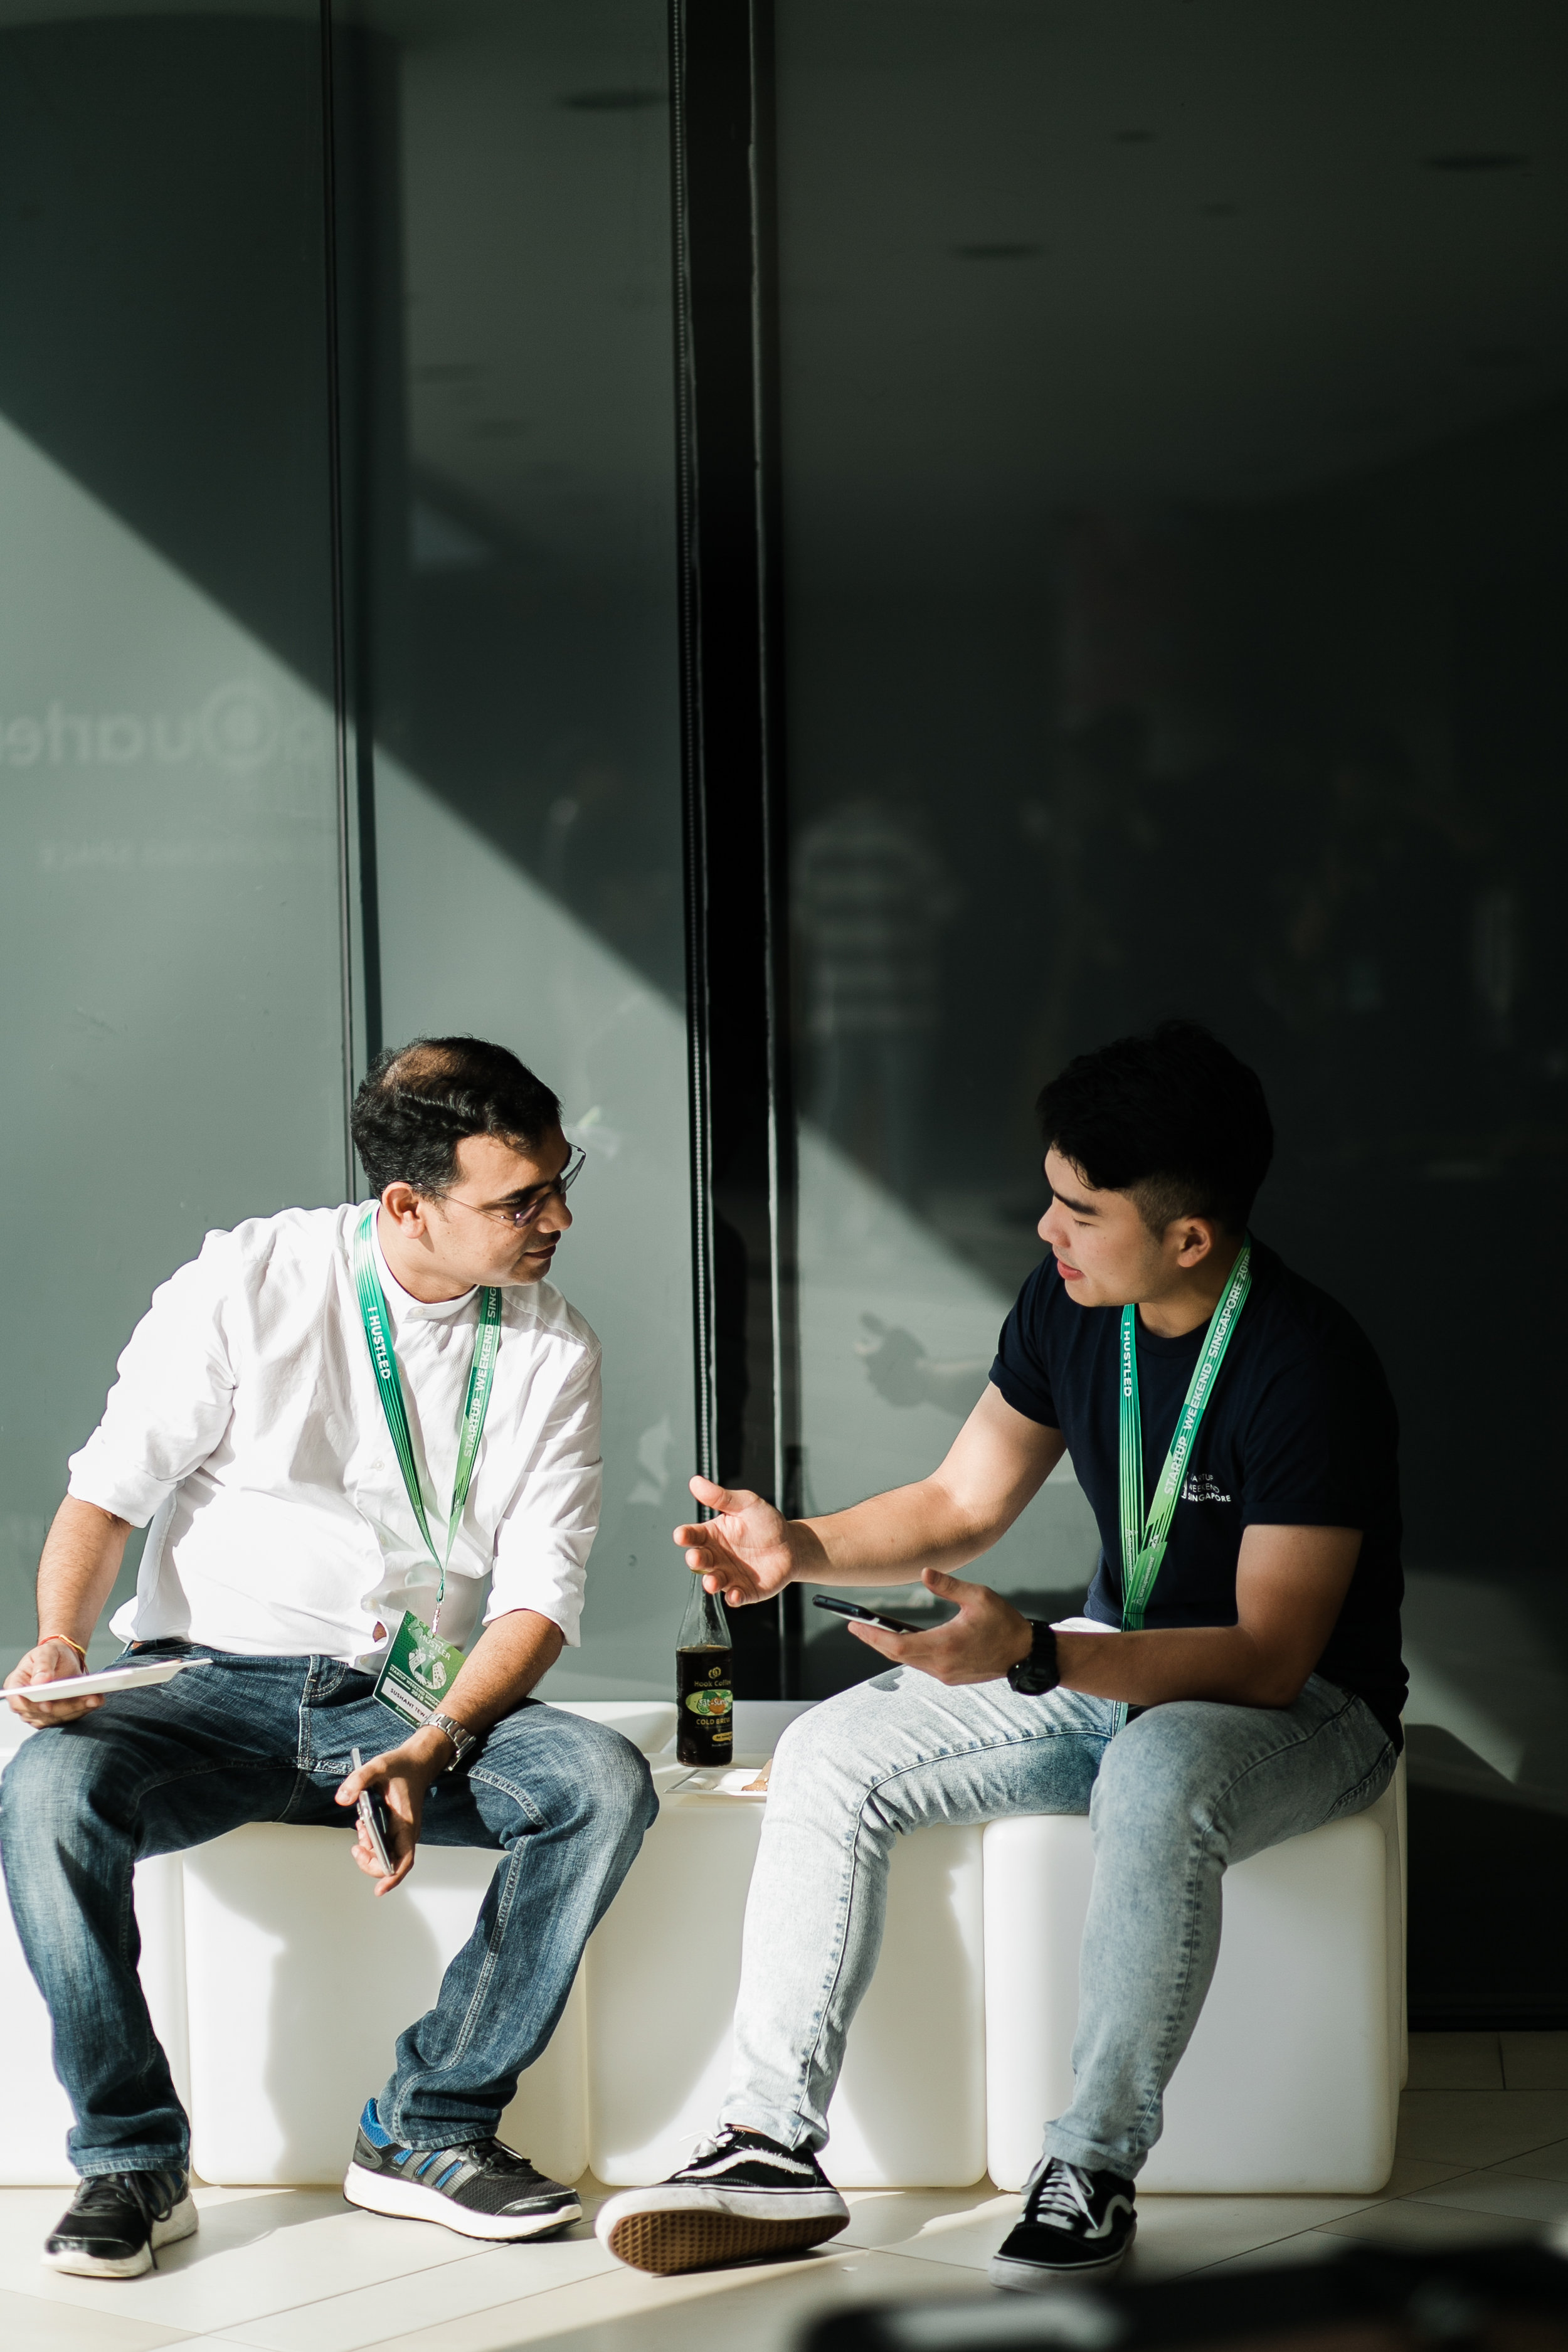 Our Approach - StartupX is built on the foundation that innovation can be nurtured in any environment. We help foster innovation and startup culture in founders, corporates and the community.Learn More